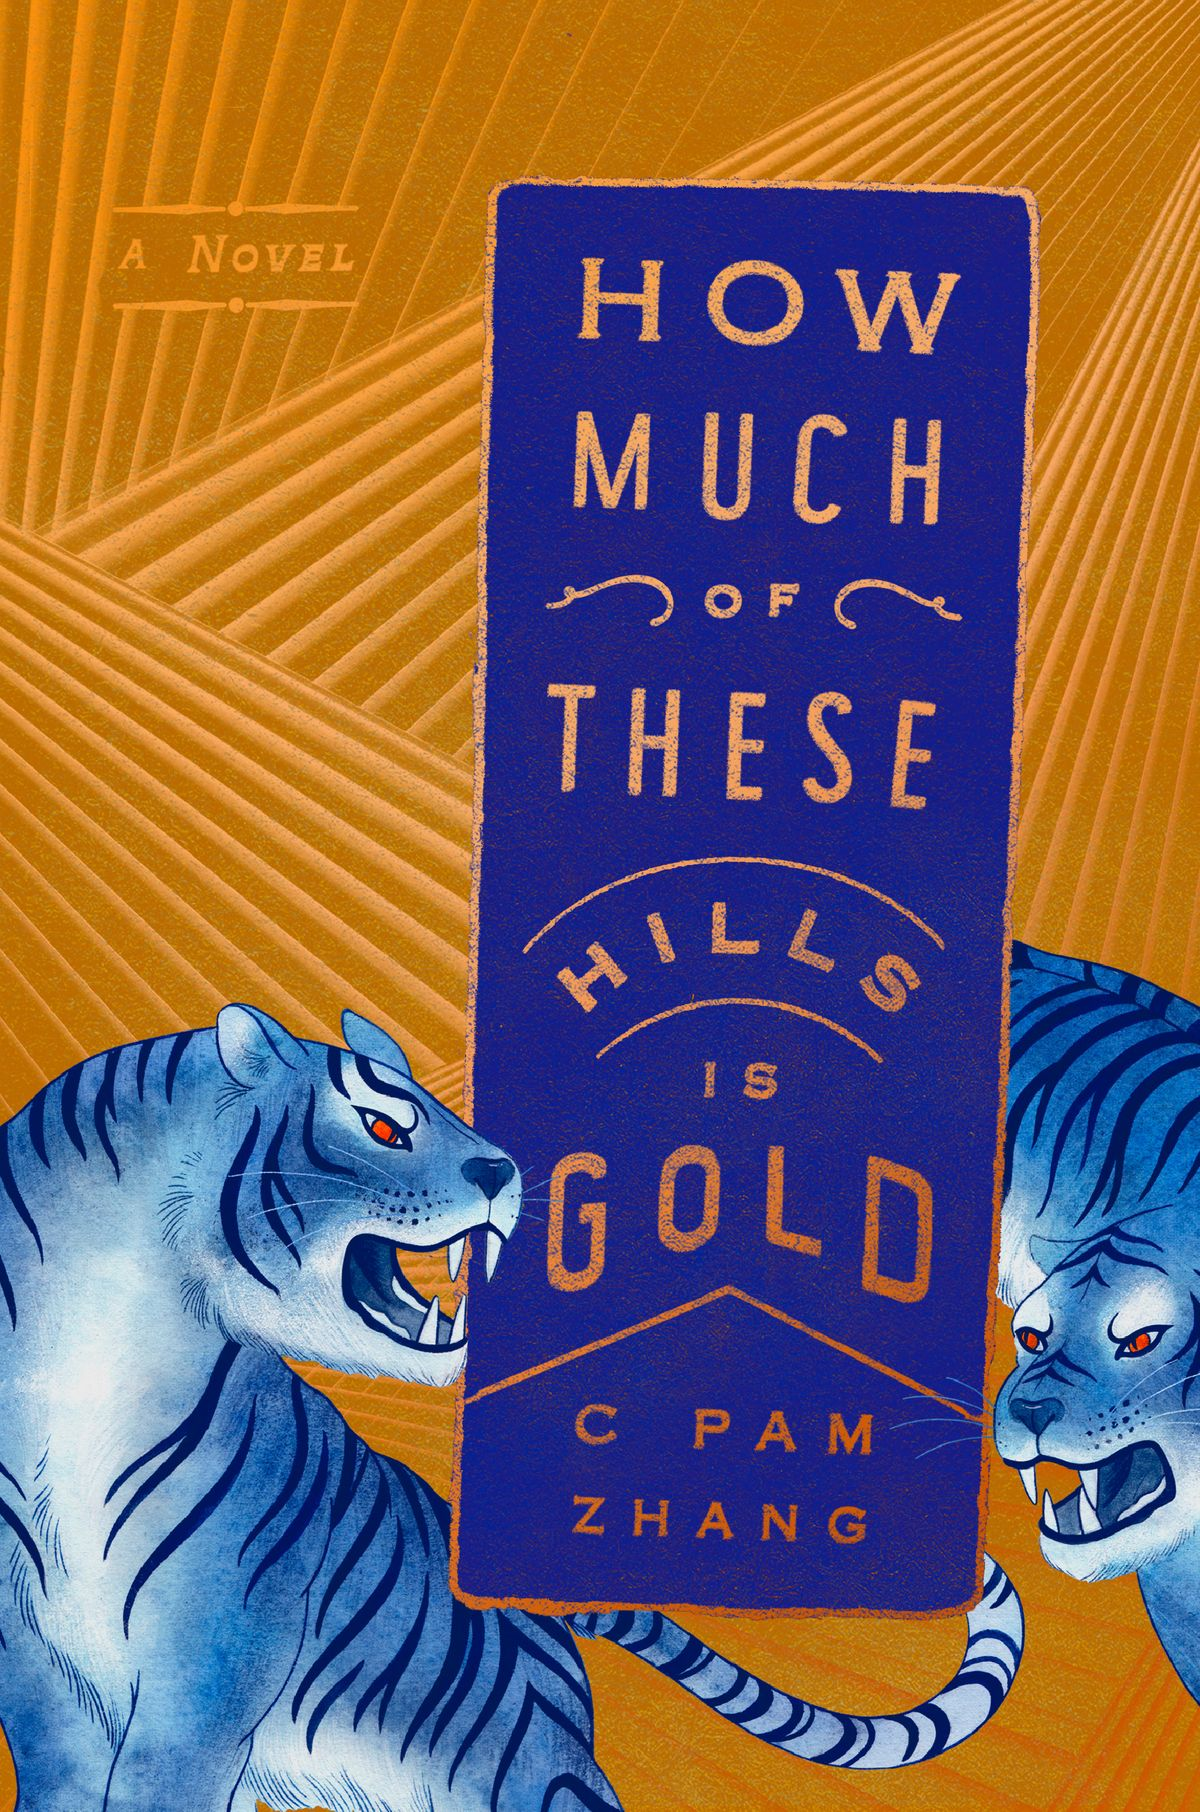 C Pam Zhang,How Much of These Hills Is Gold